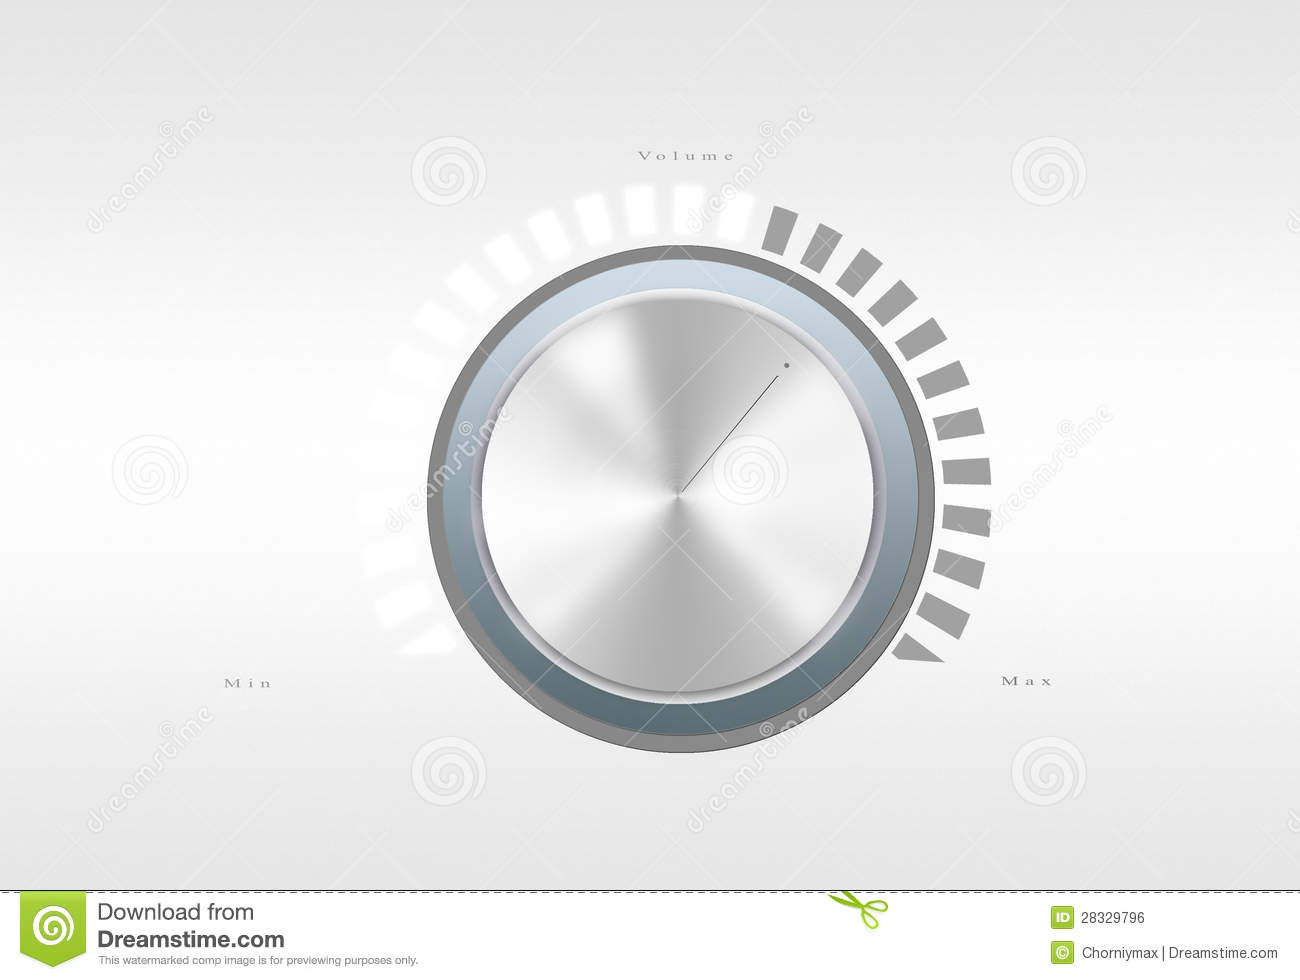 volume button royalty free stock image